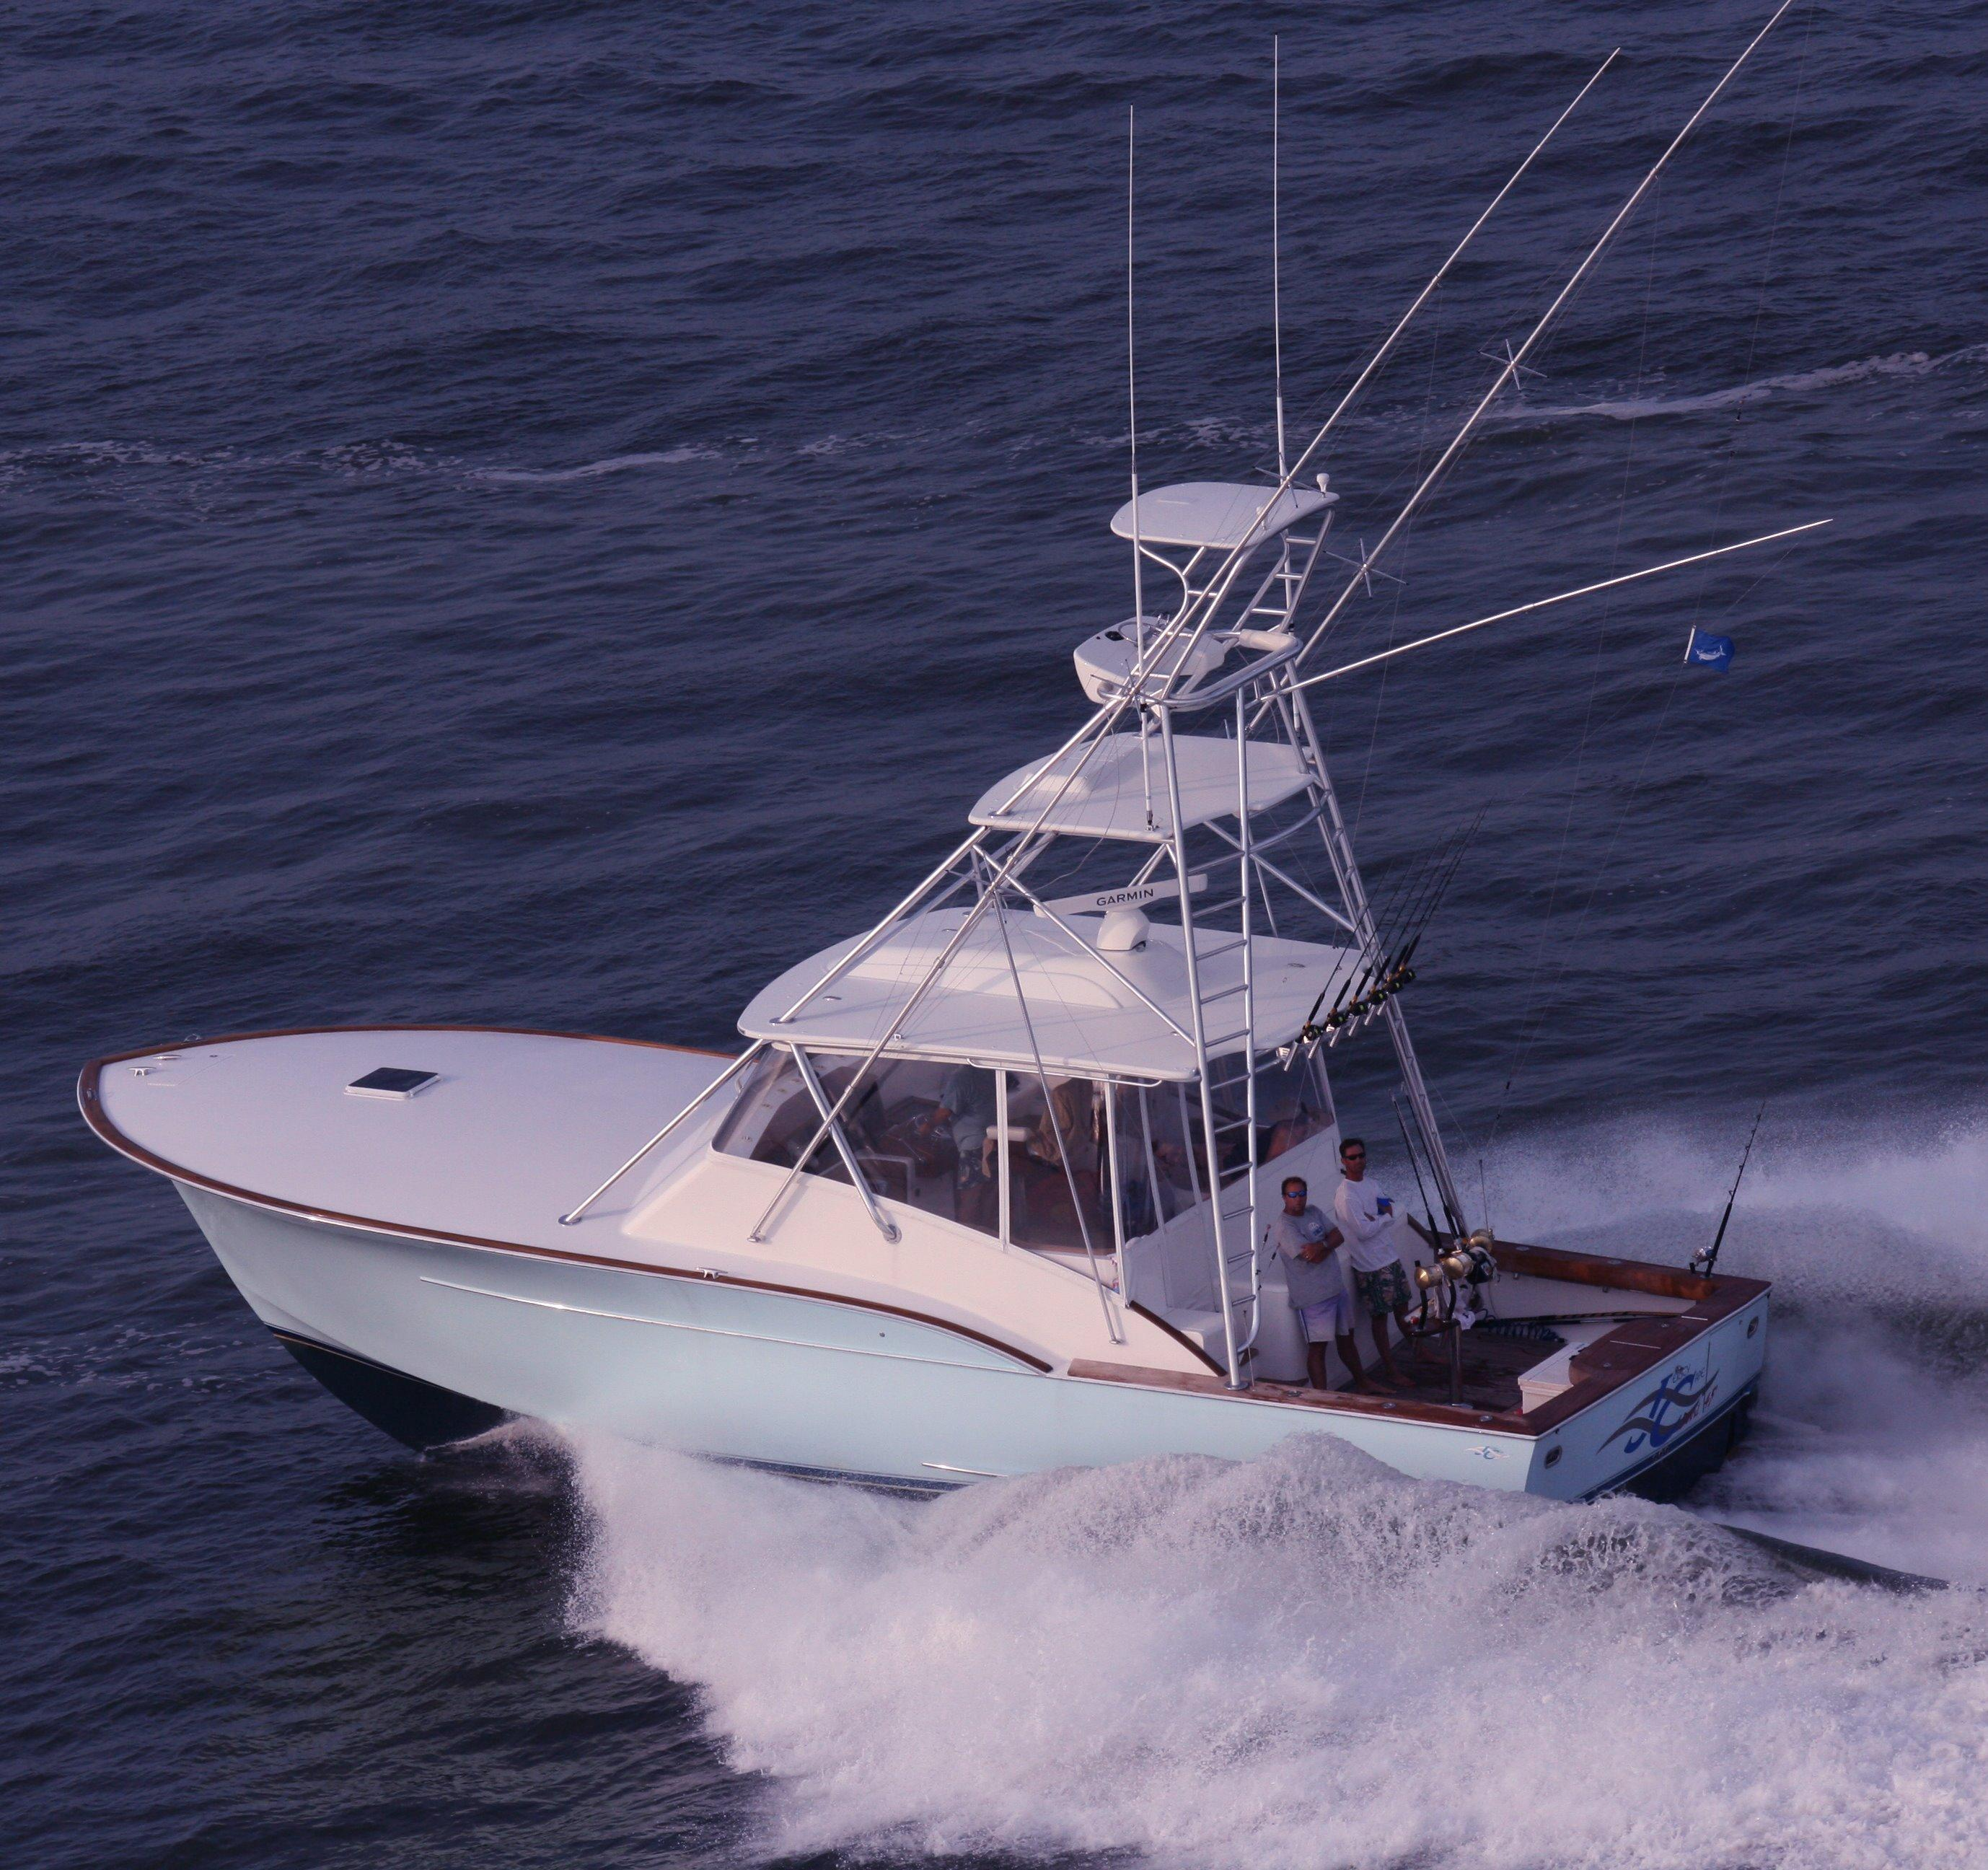 Fishing boat listings in nj for Fishing boats for sale nj